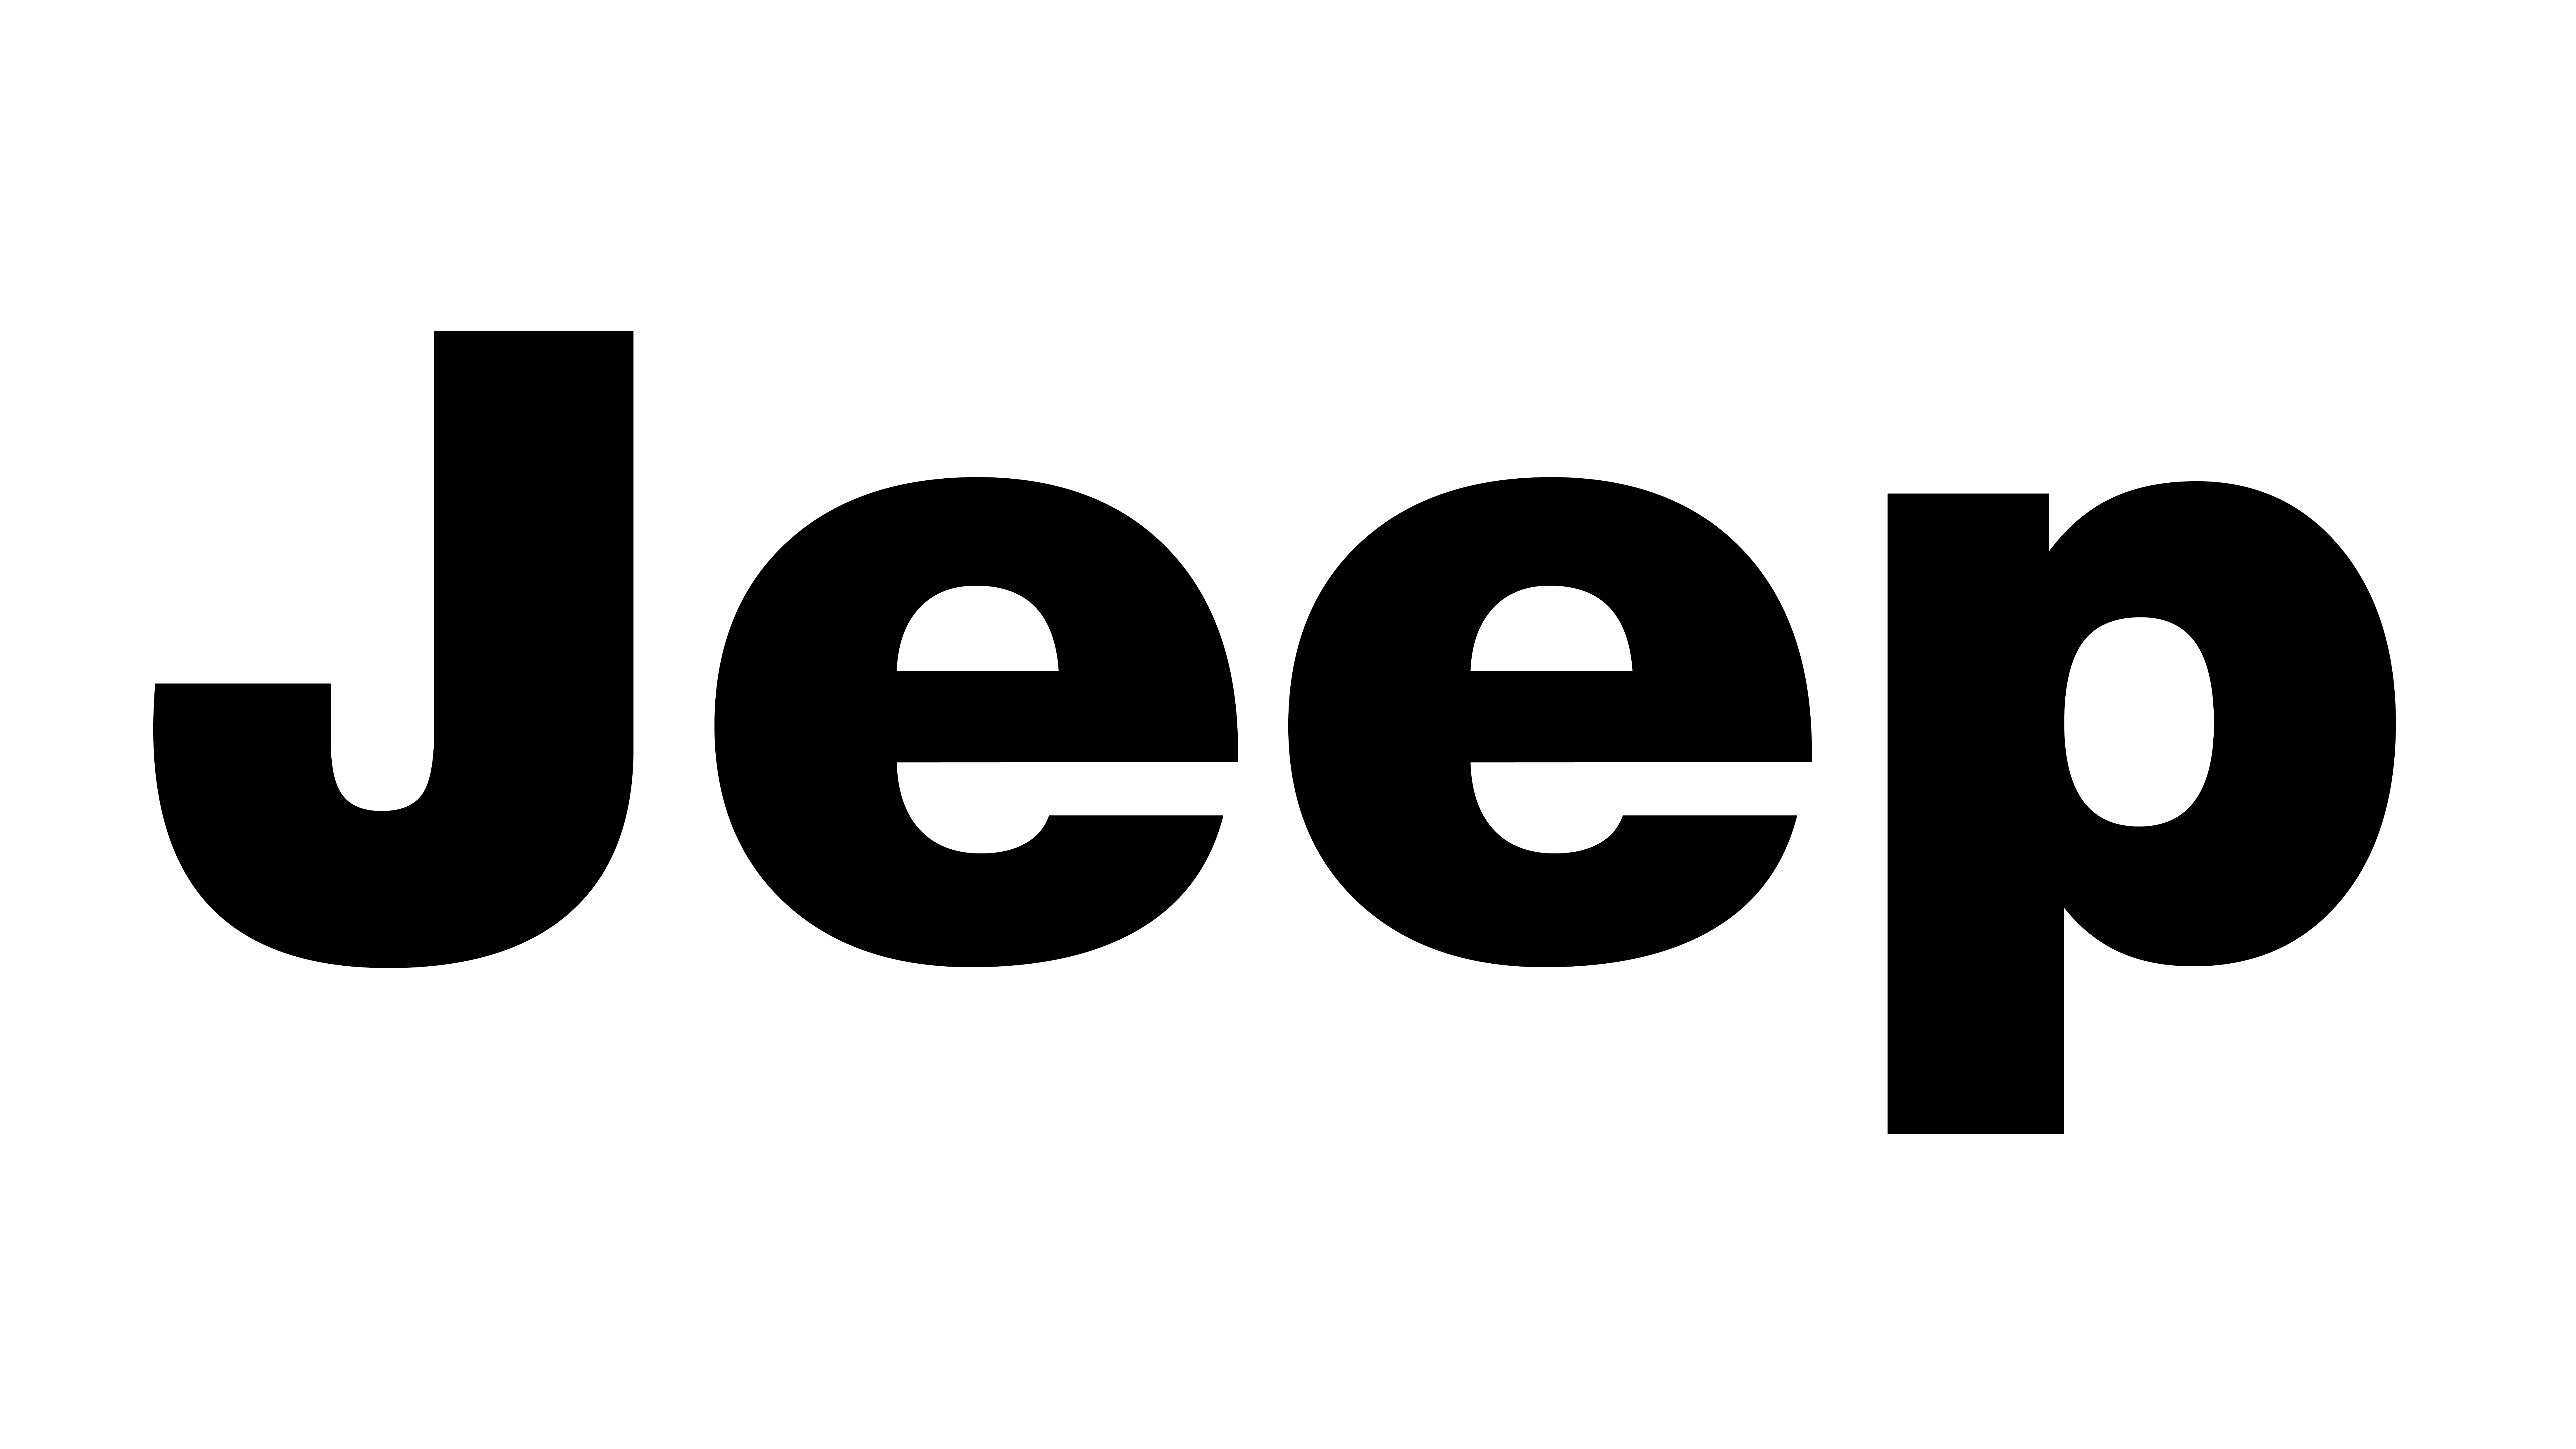 Jeep letters photo